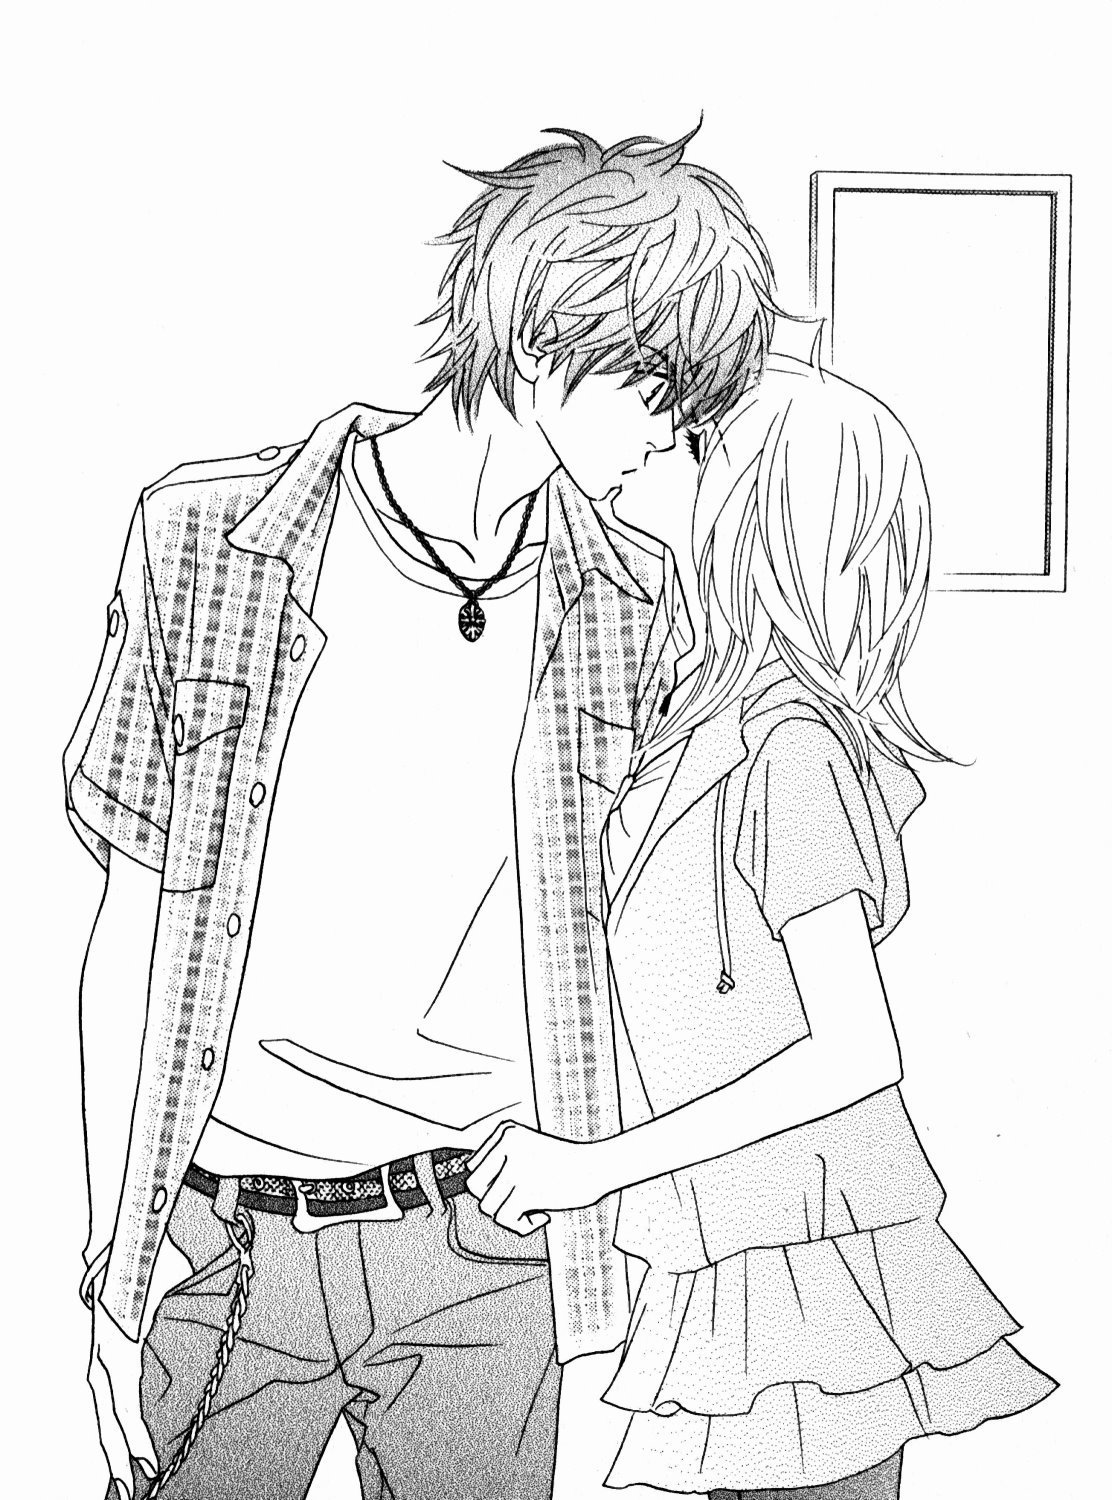 brother and sister love relationship manga here